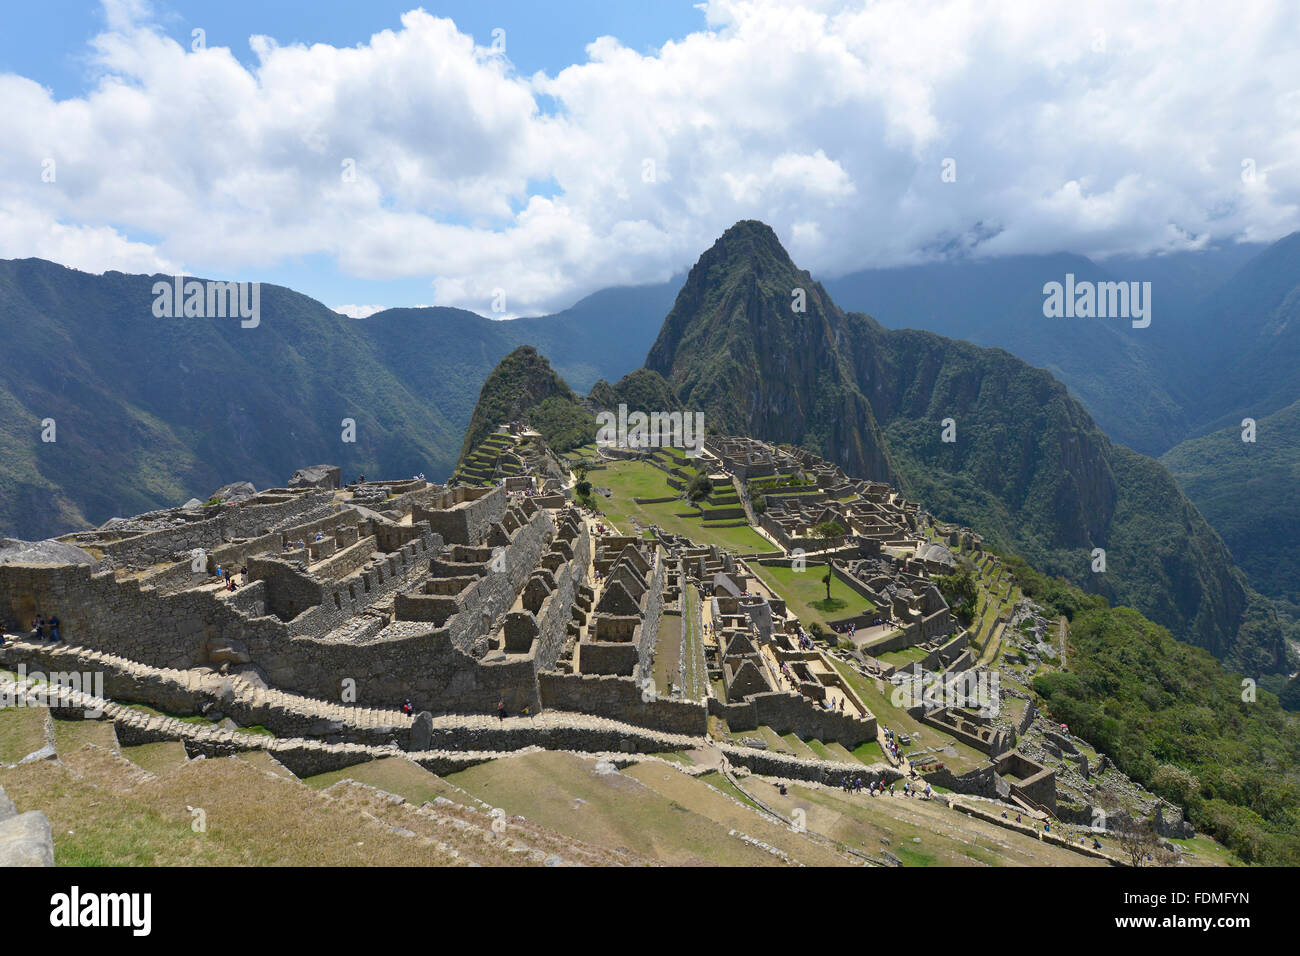 Machu Picchu, Peru, UNESCO World Heritage Site in 1983. One of the New Seven Wonders of the World. - Stock Image